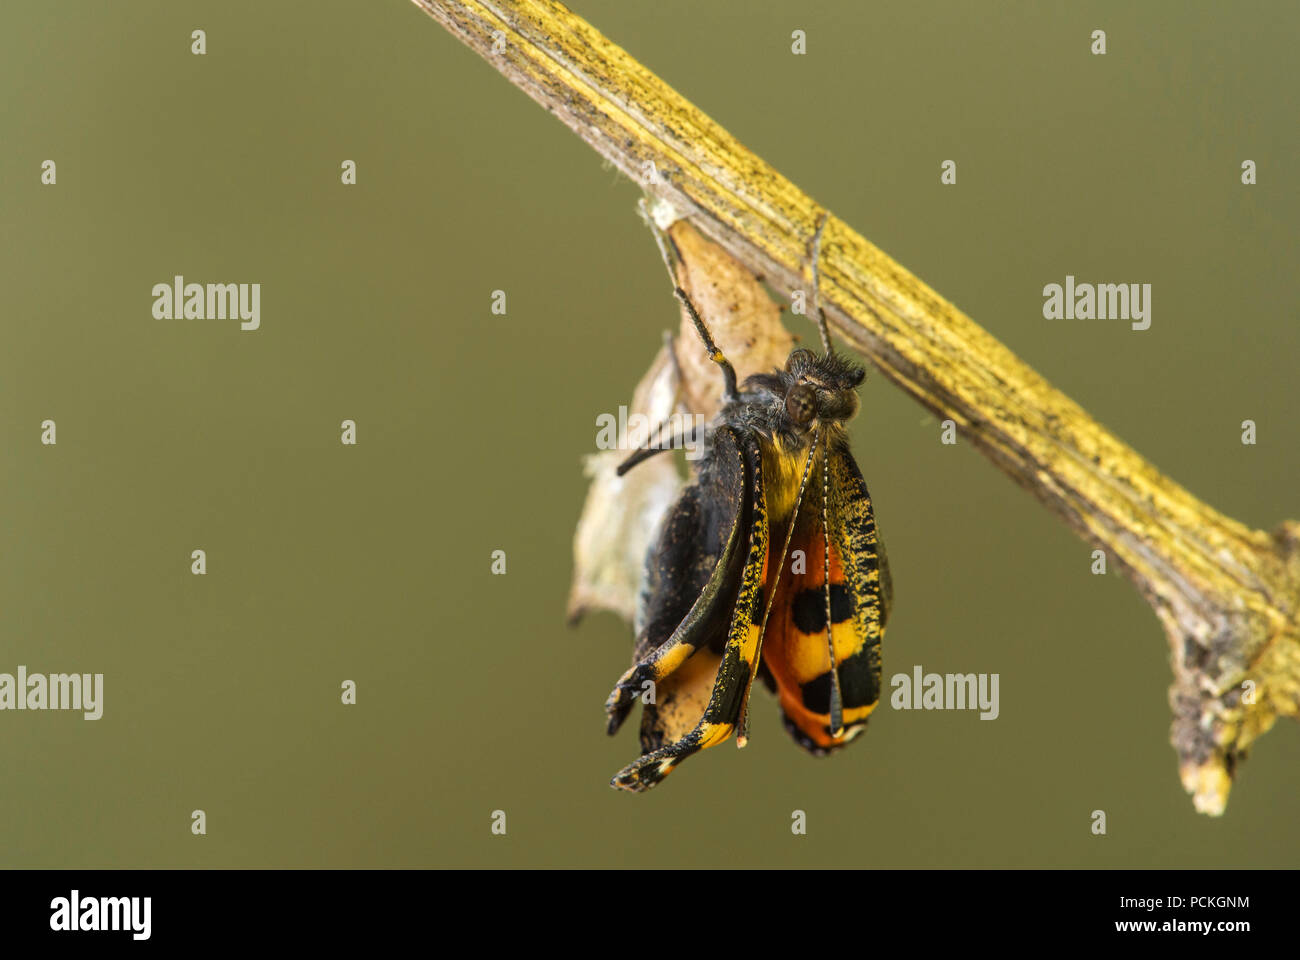 Little fox (Aglais urticae), newly hatched butterfly unfolding wings, Switzerland - Stock Image